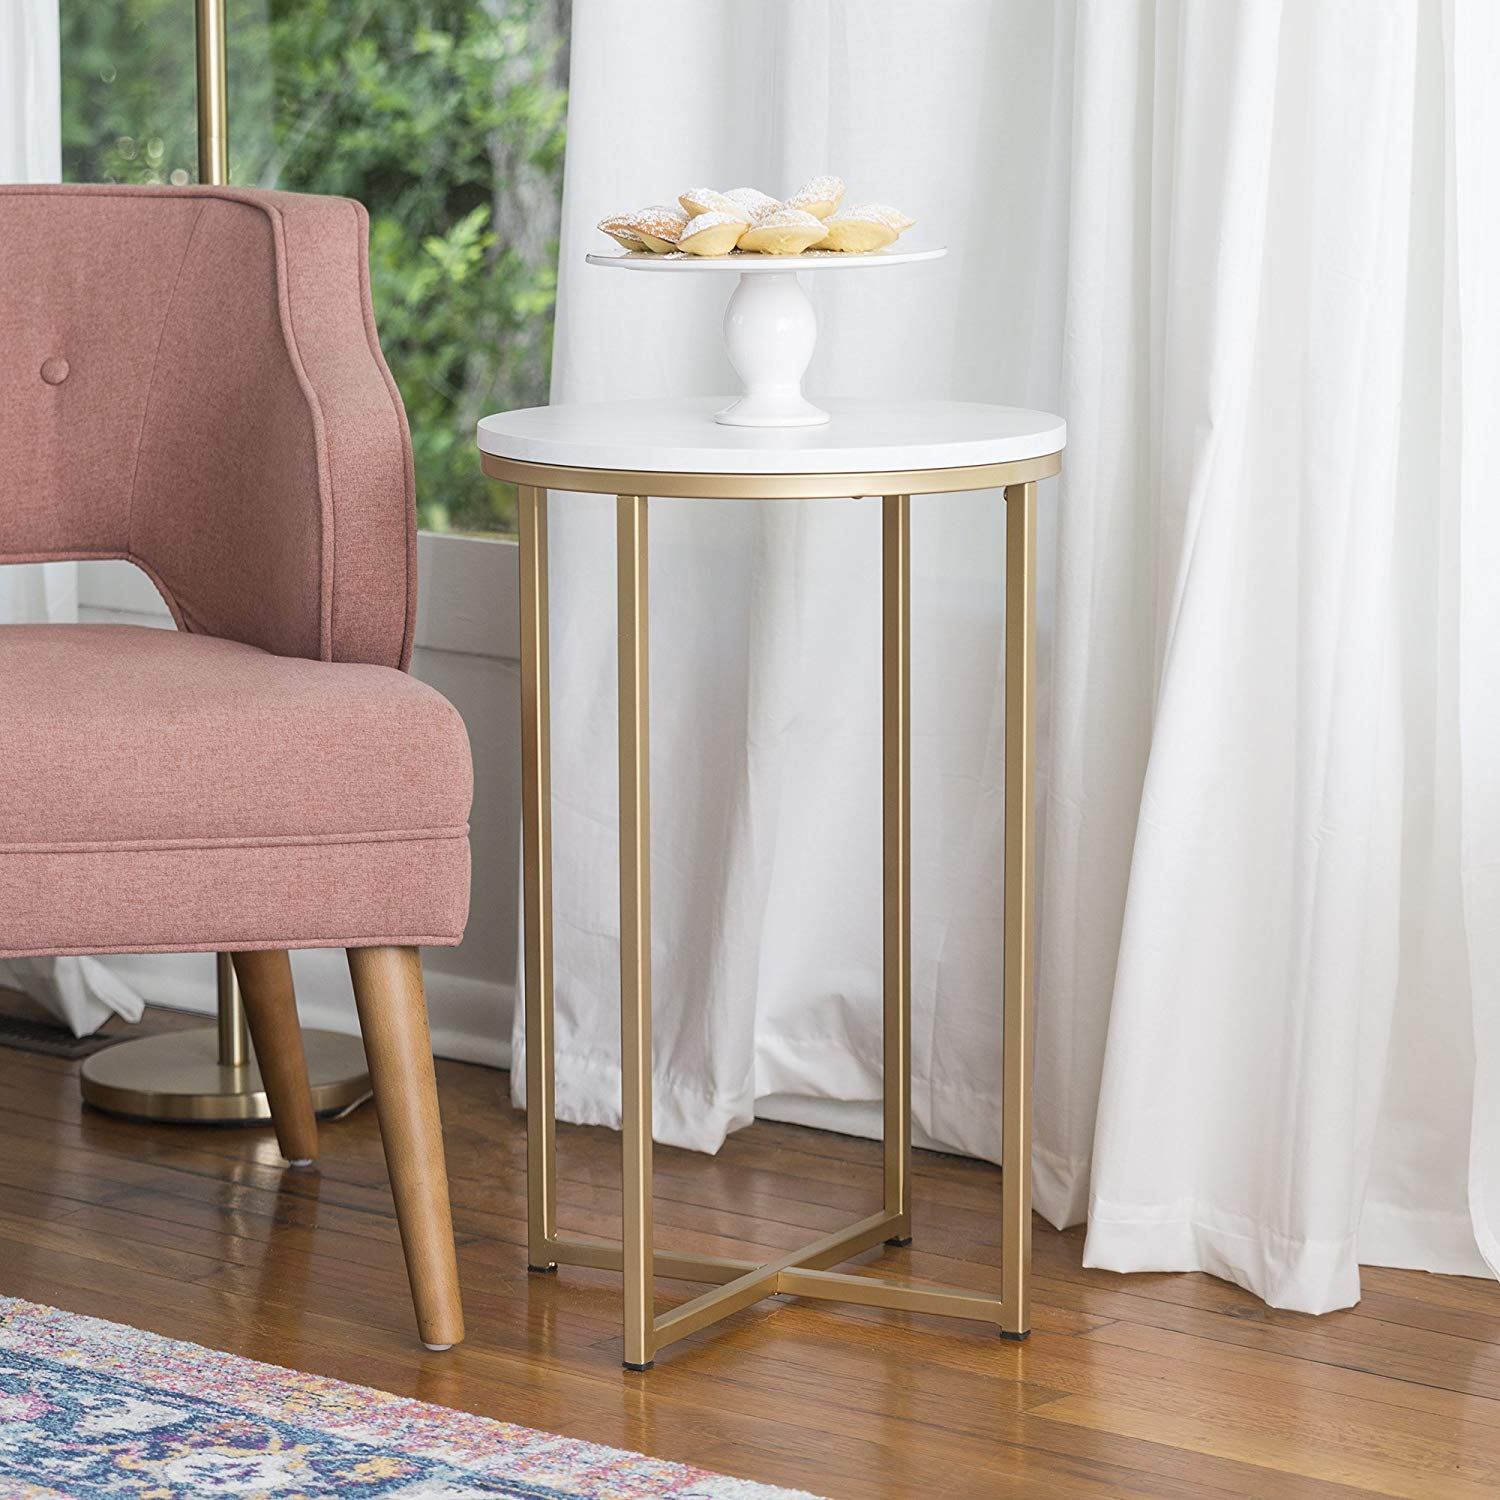 furniture round side table faux marble gold mirrored glass accent with drawer kitchen dining entryway rug coffee tables target fur pillow country cottage small cream cement and